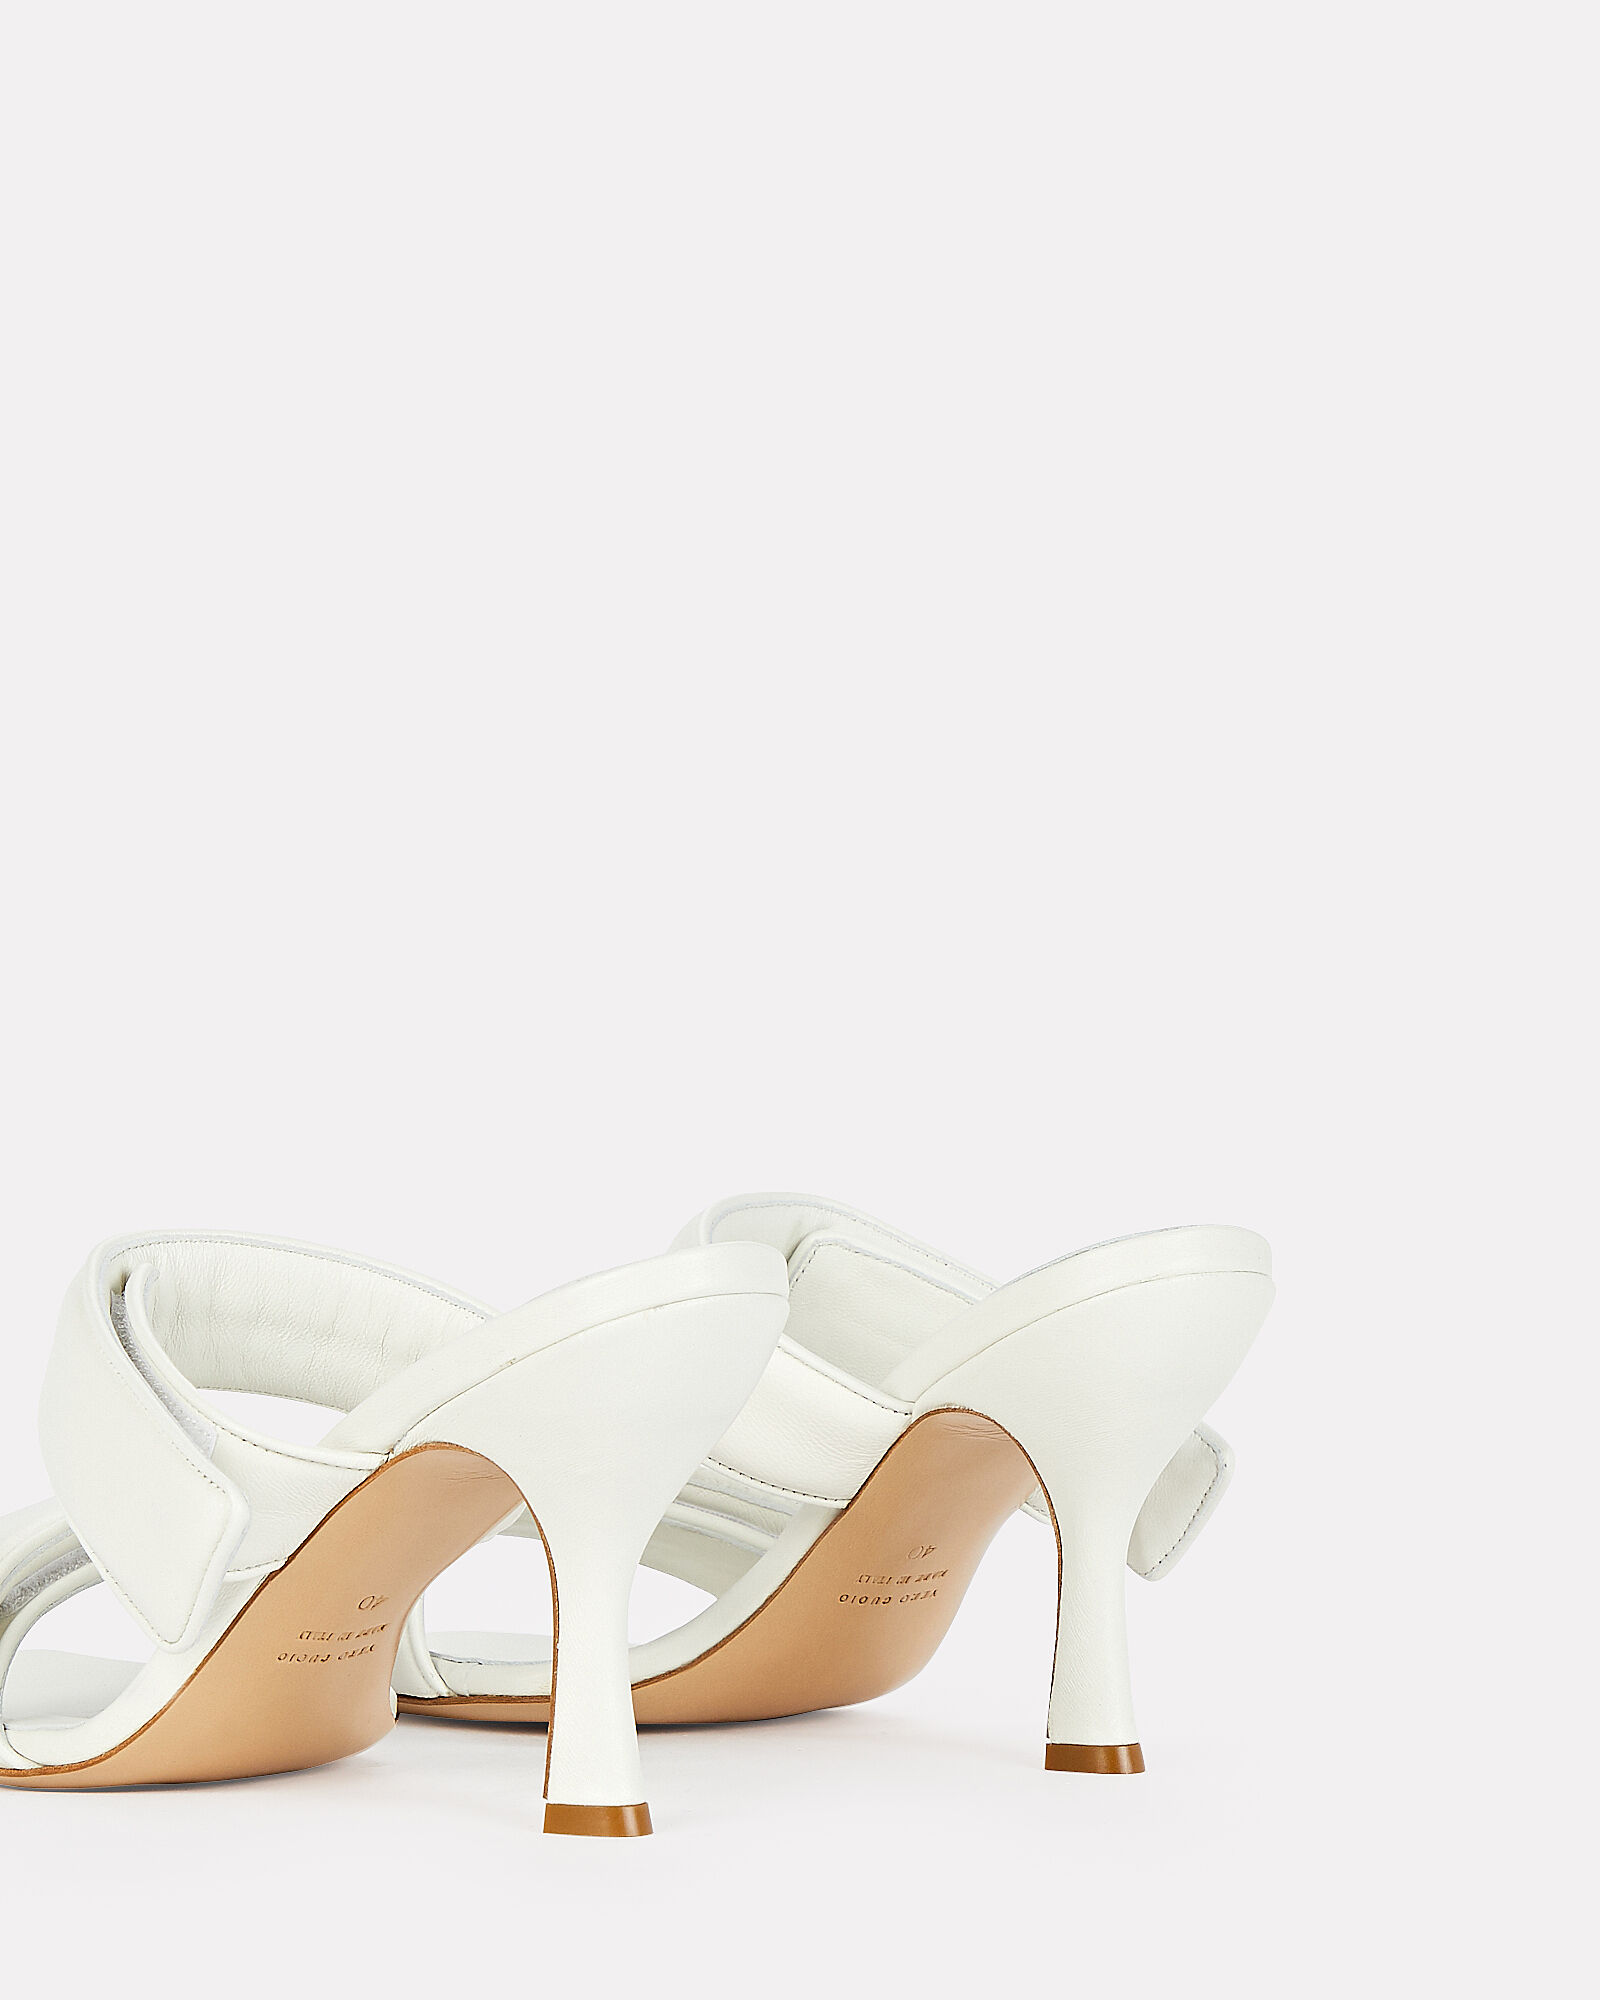 x Pernille Teisbaek Puffer Leather Sandals, WHITE, hi-res